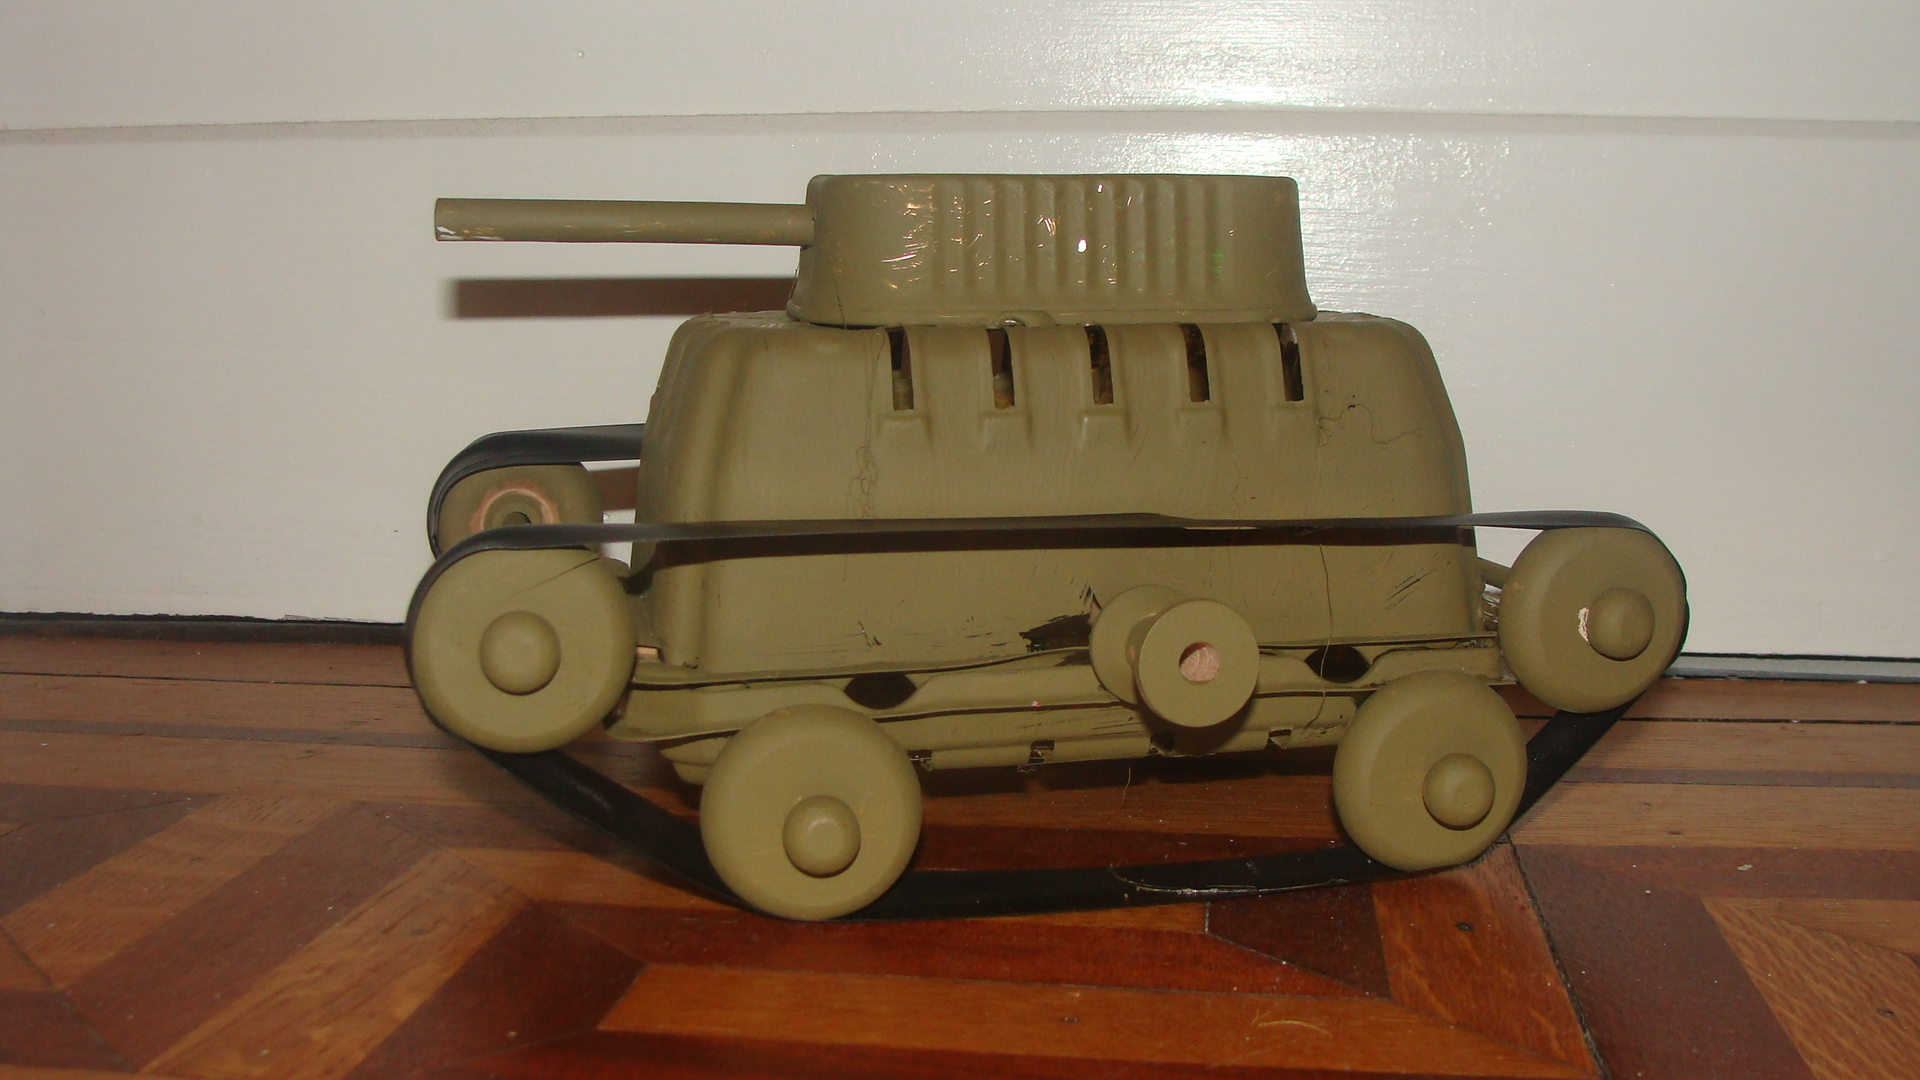 ... Toy Tank Plans , Wooden Toy Car , Wooden Toy Plane , Wooden Toy Boat